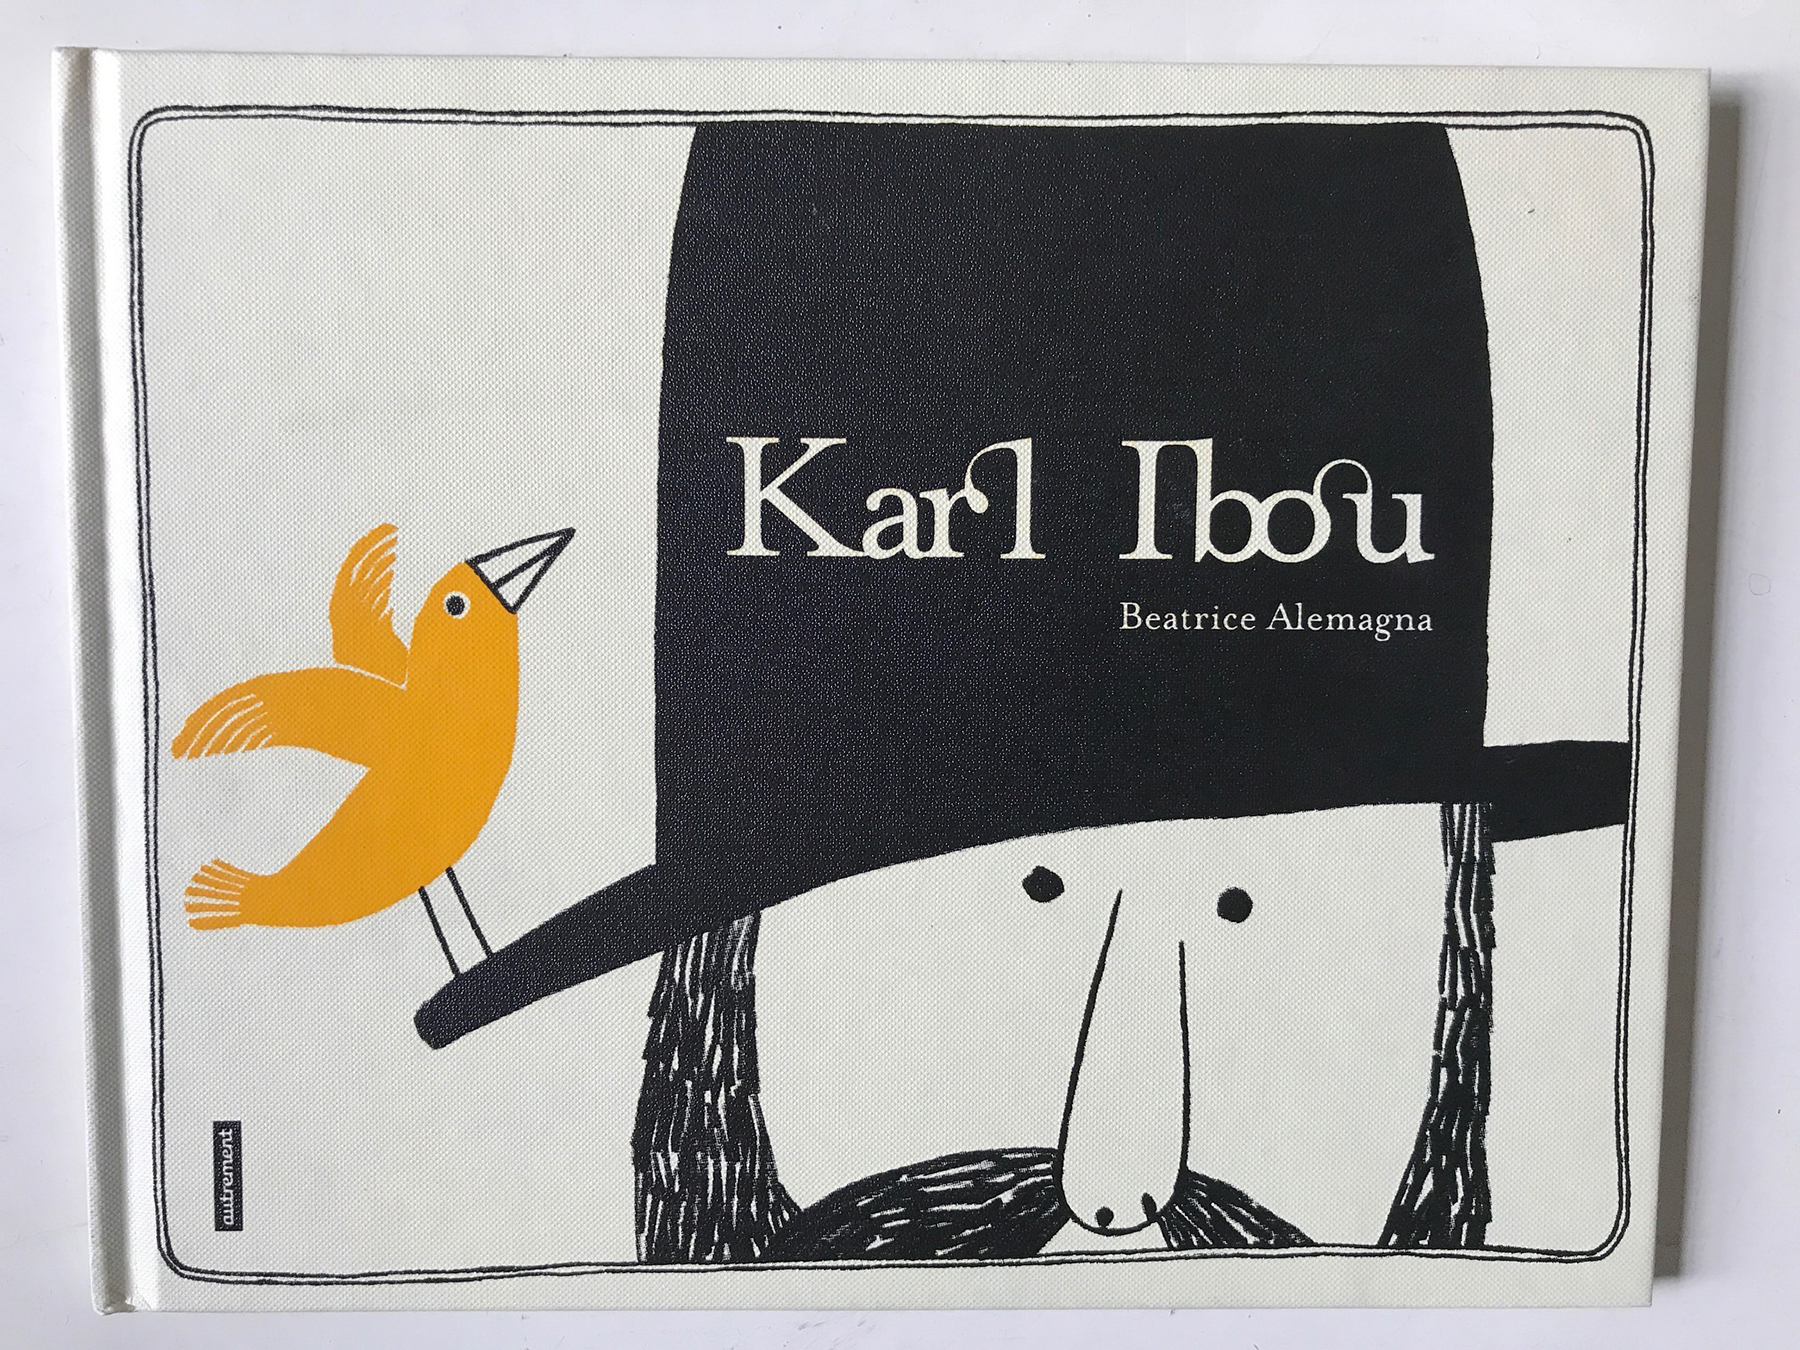 Karl Ibou by Beatrice Alemagna. I bought this book in a Parisian bookshop. I chose it for its cover and only much later discovered it was a very interesting book.